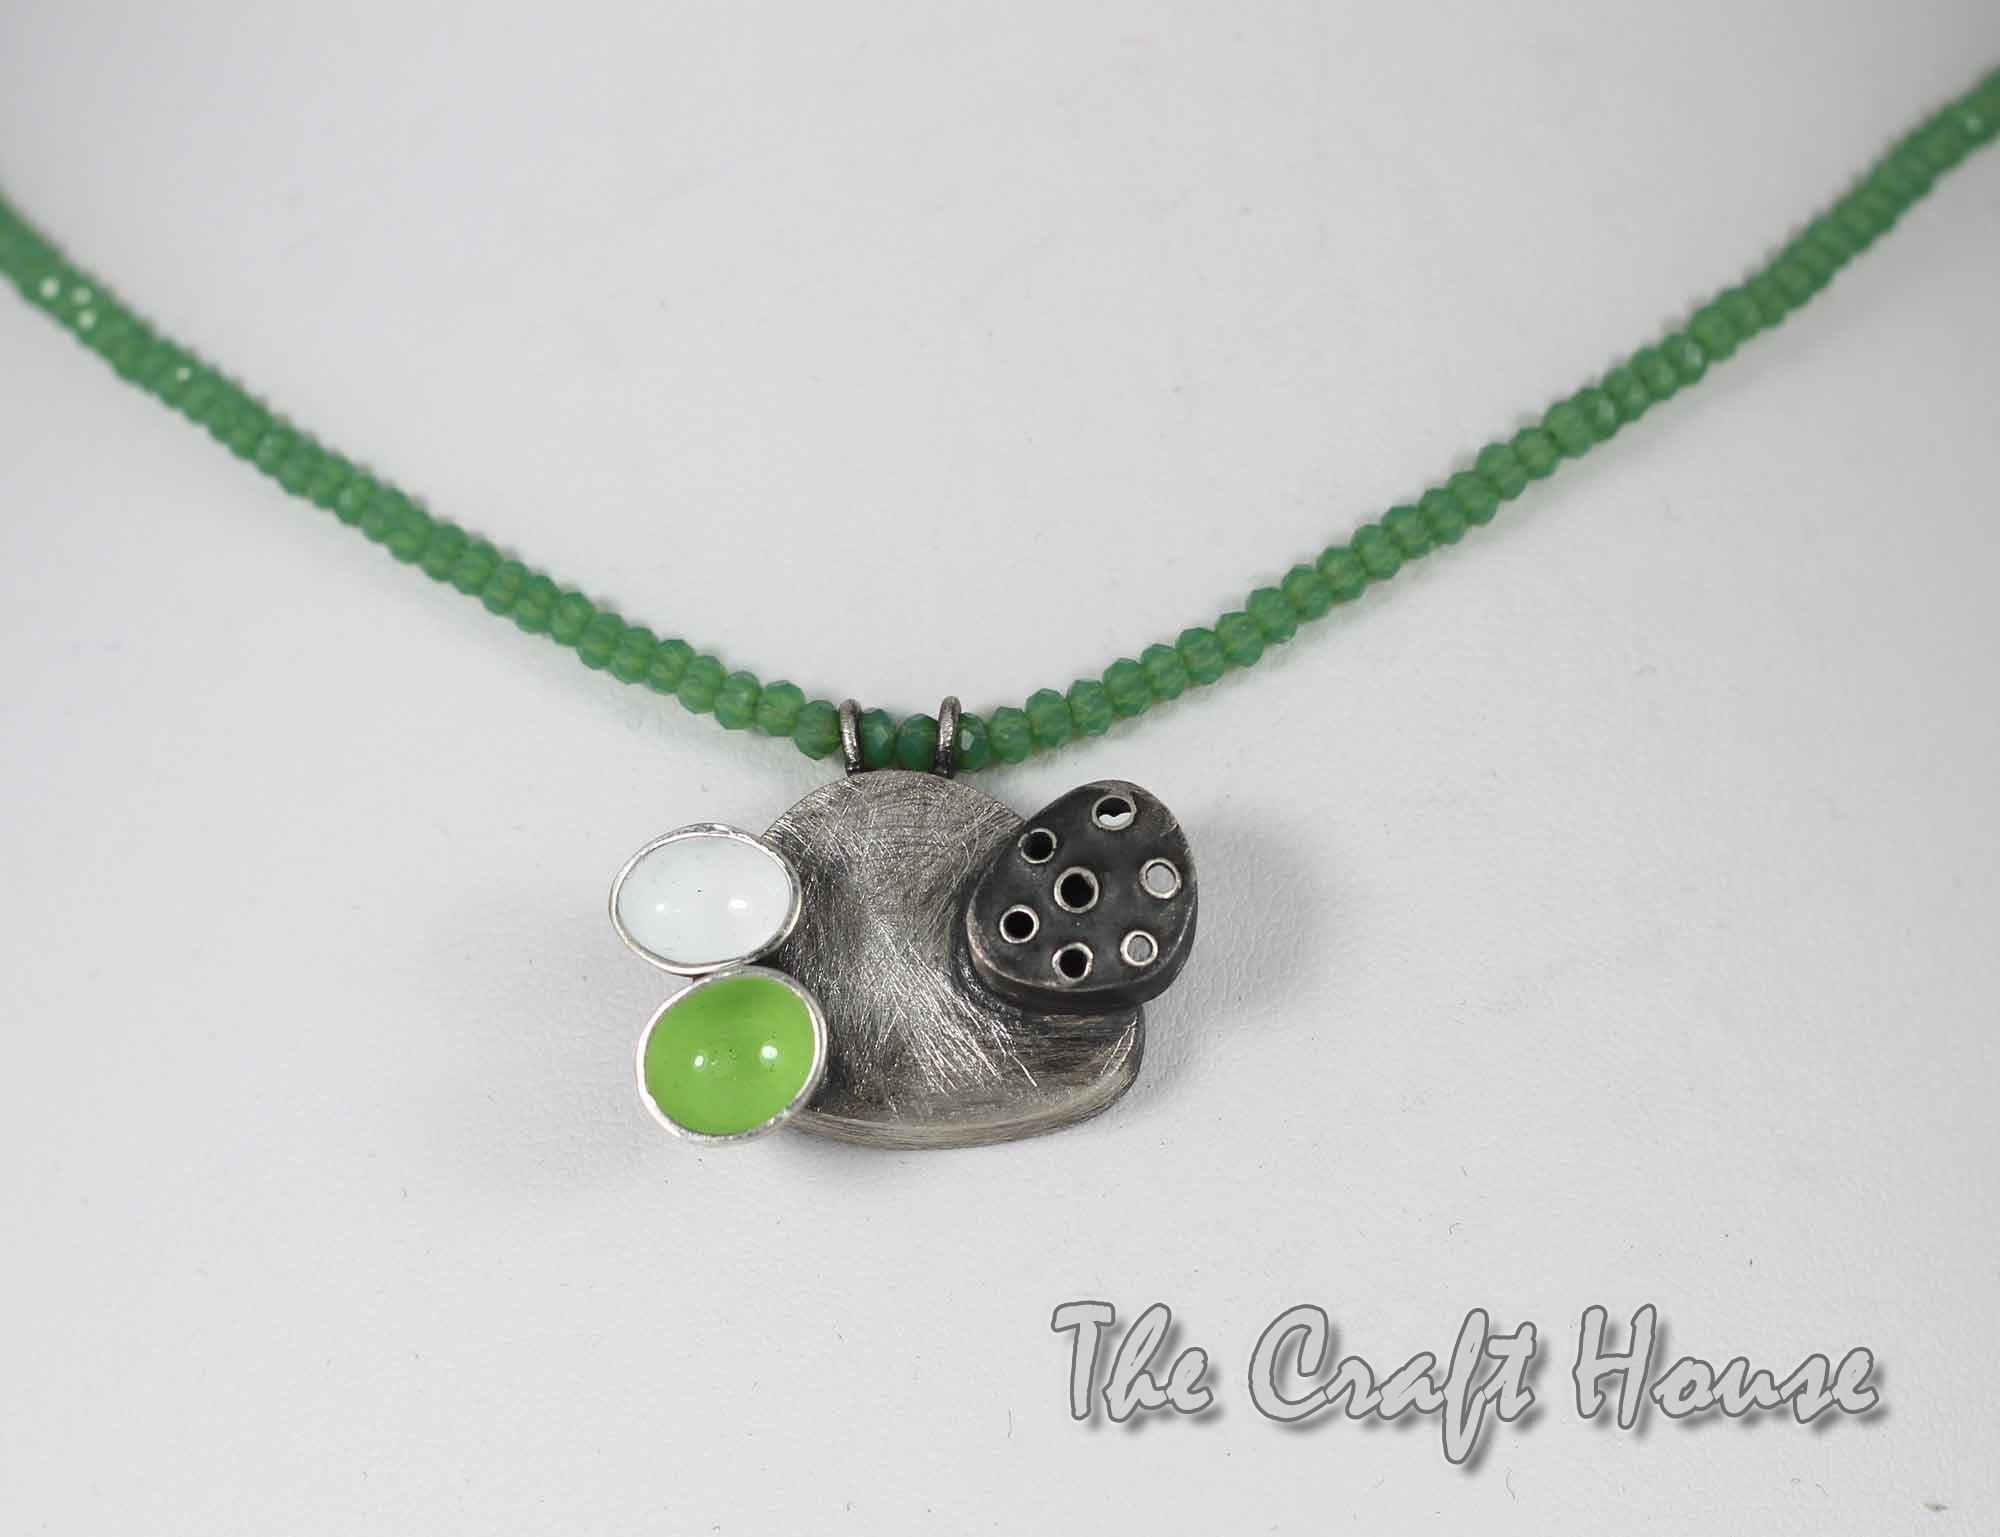 Silver necklace with color enamel